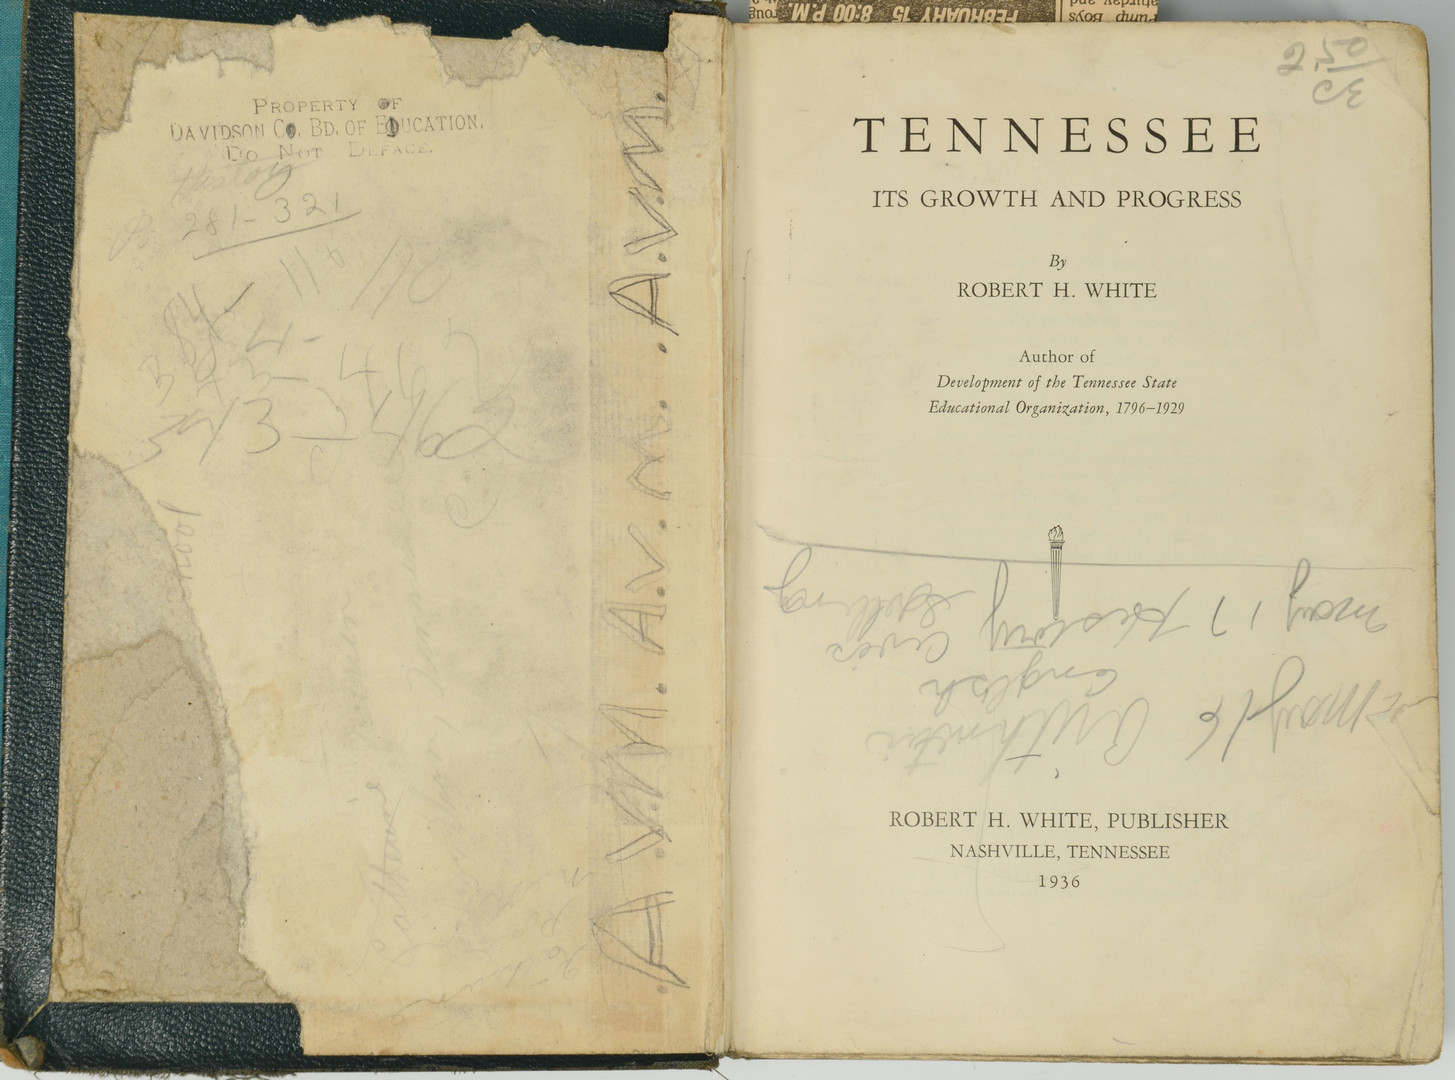 Lot 870: 20 Tennessee related Publications